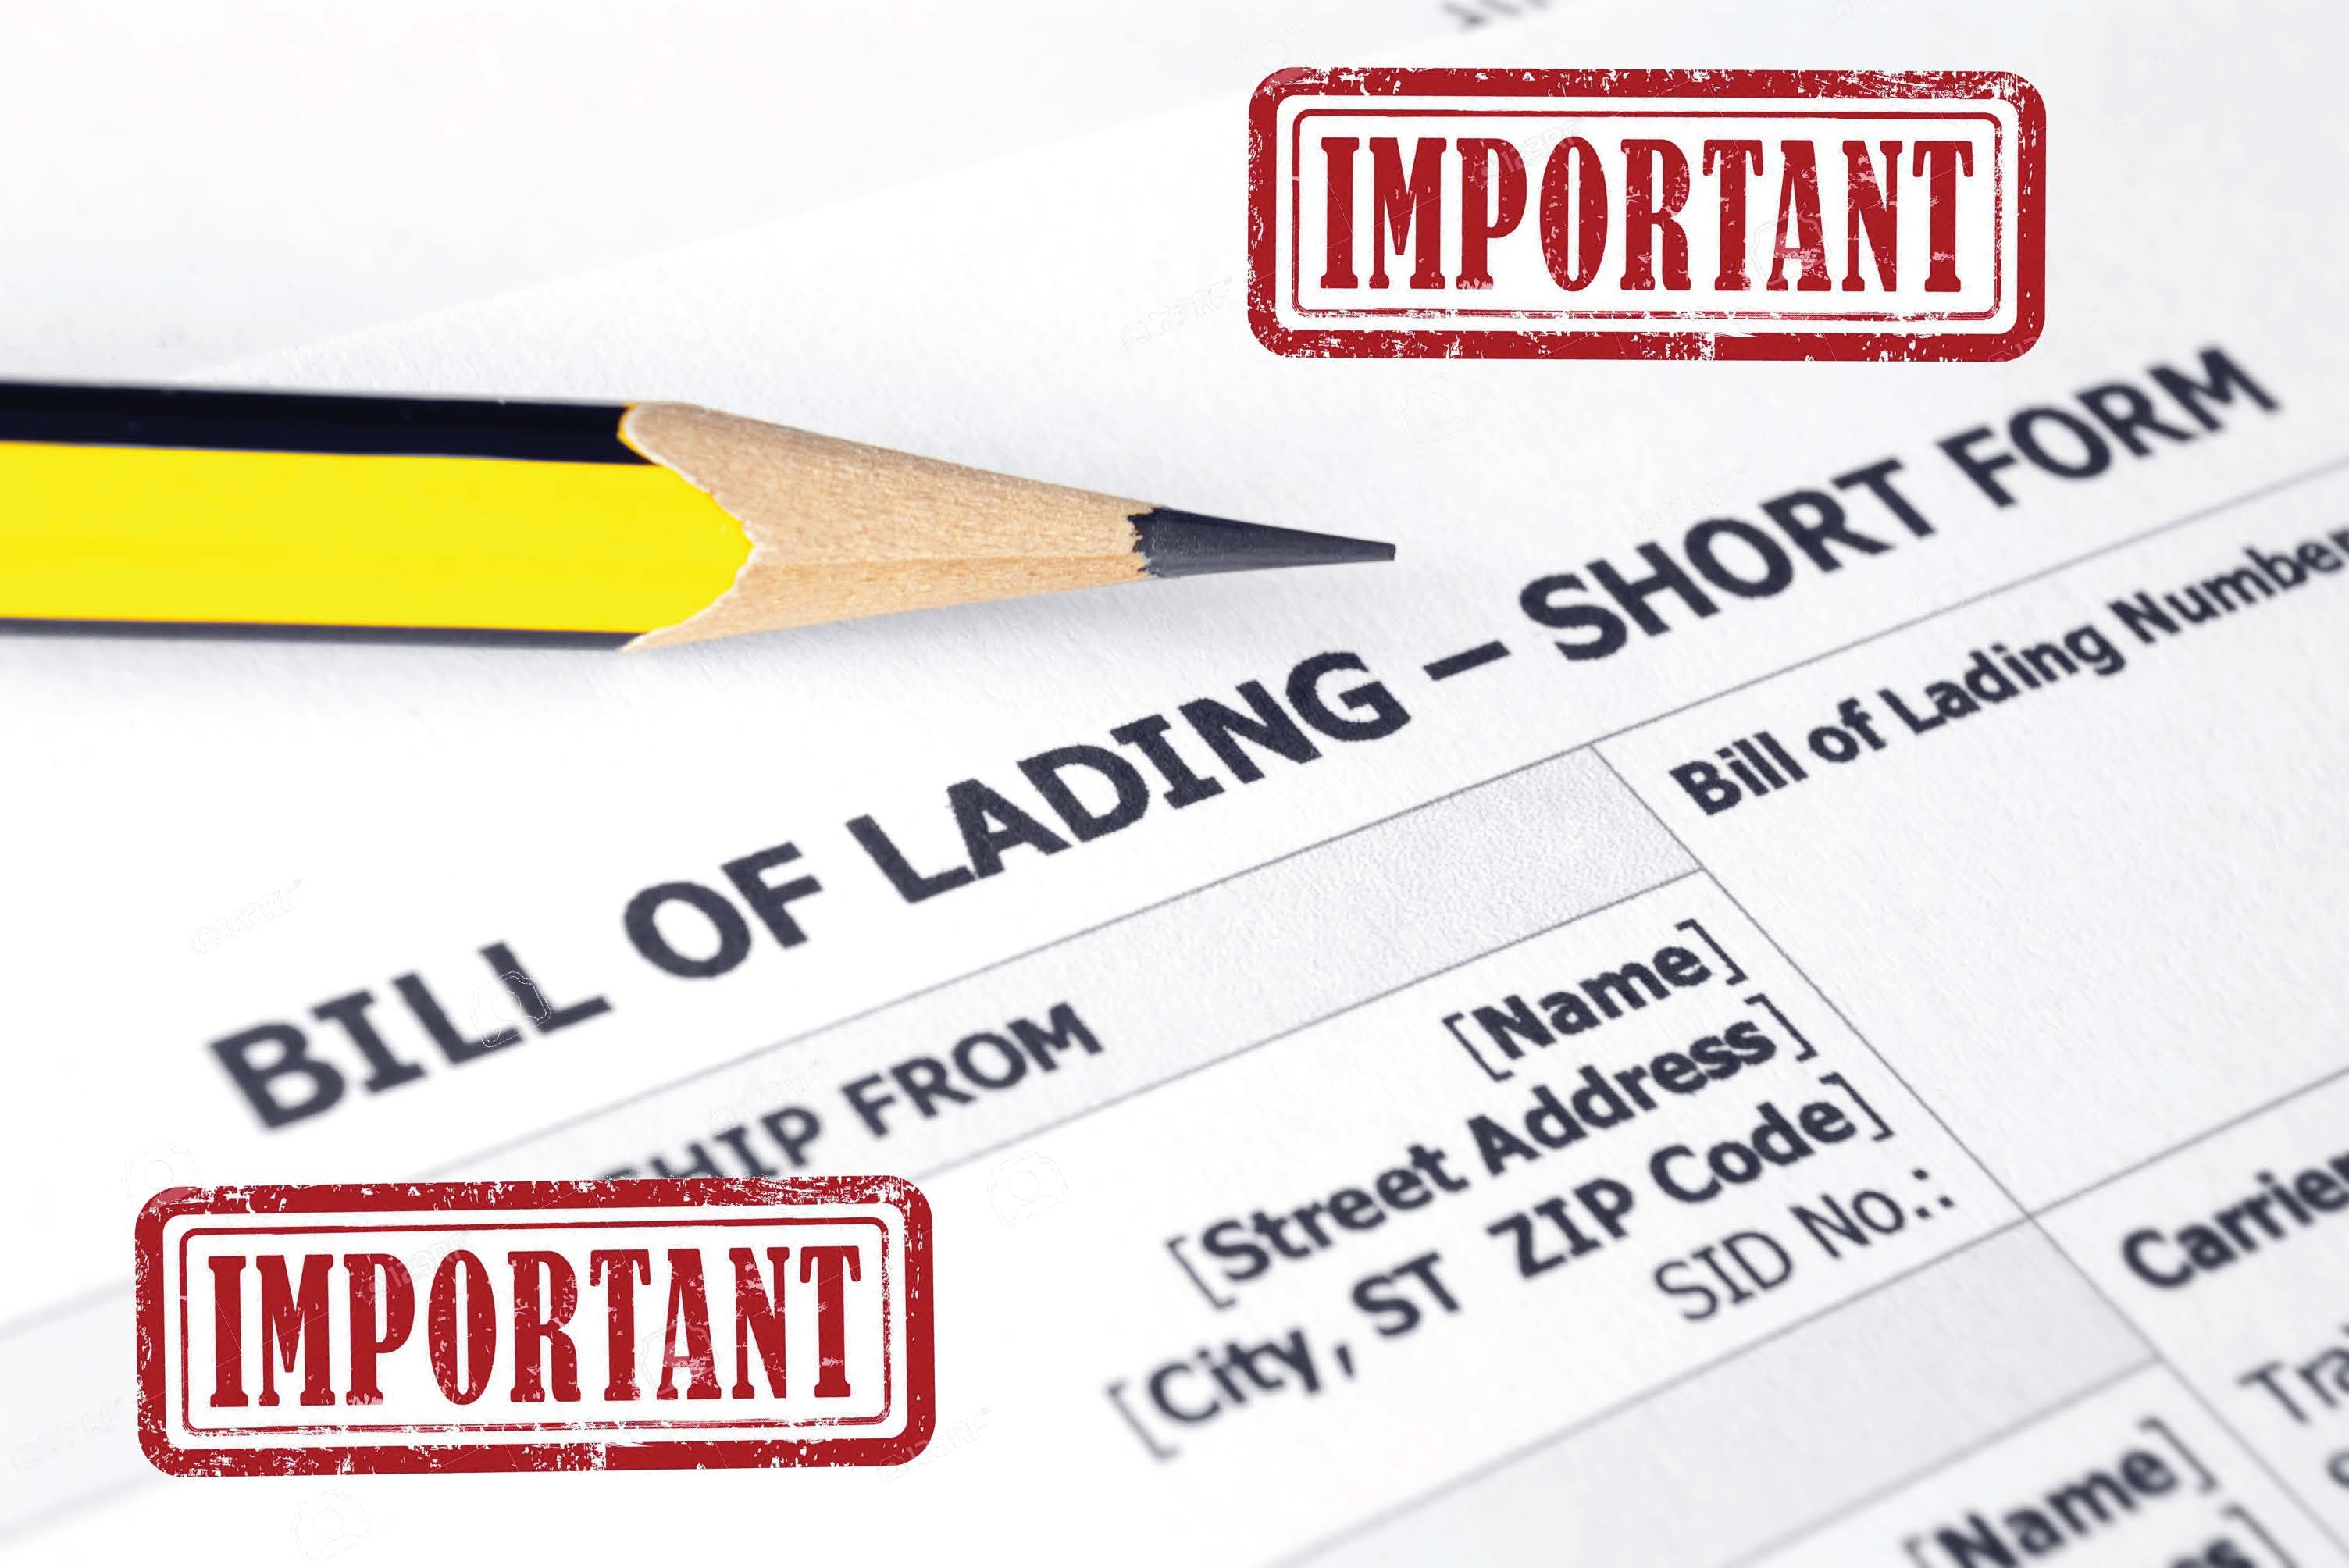 The Importance of a Fully Executed Bill of Lading